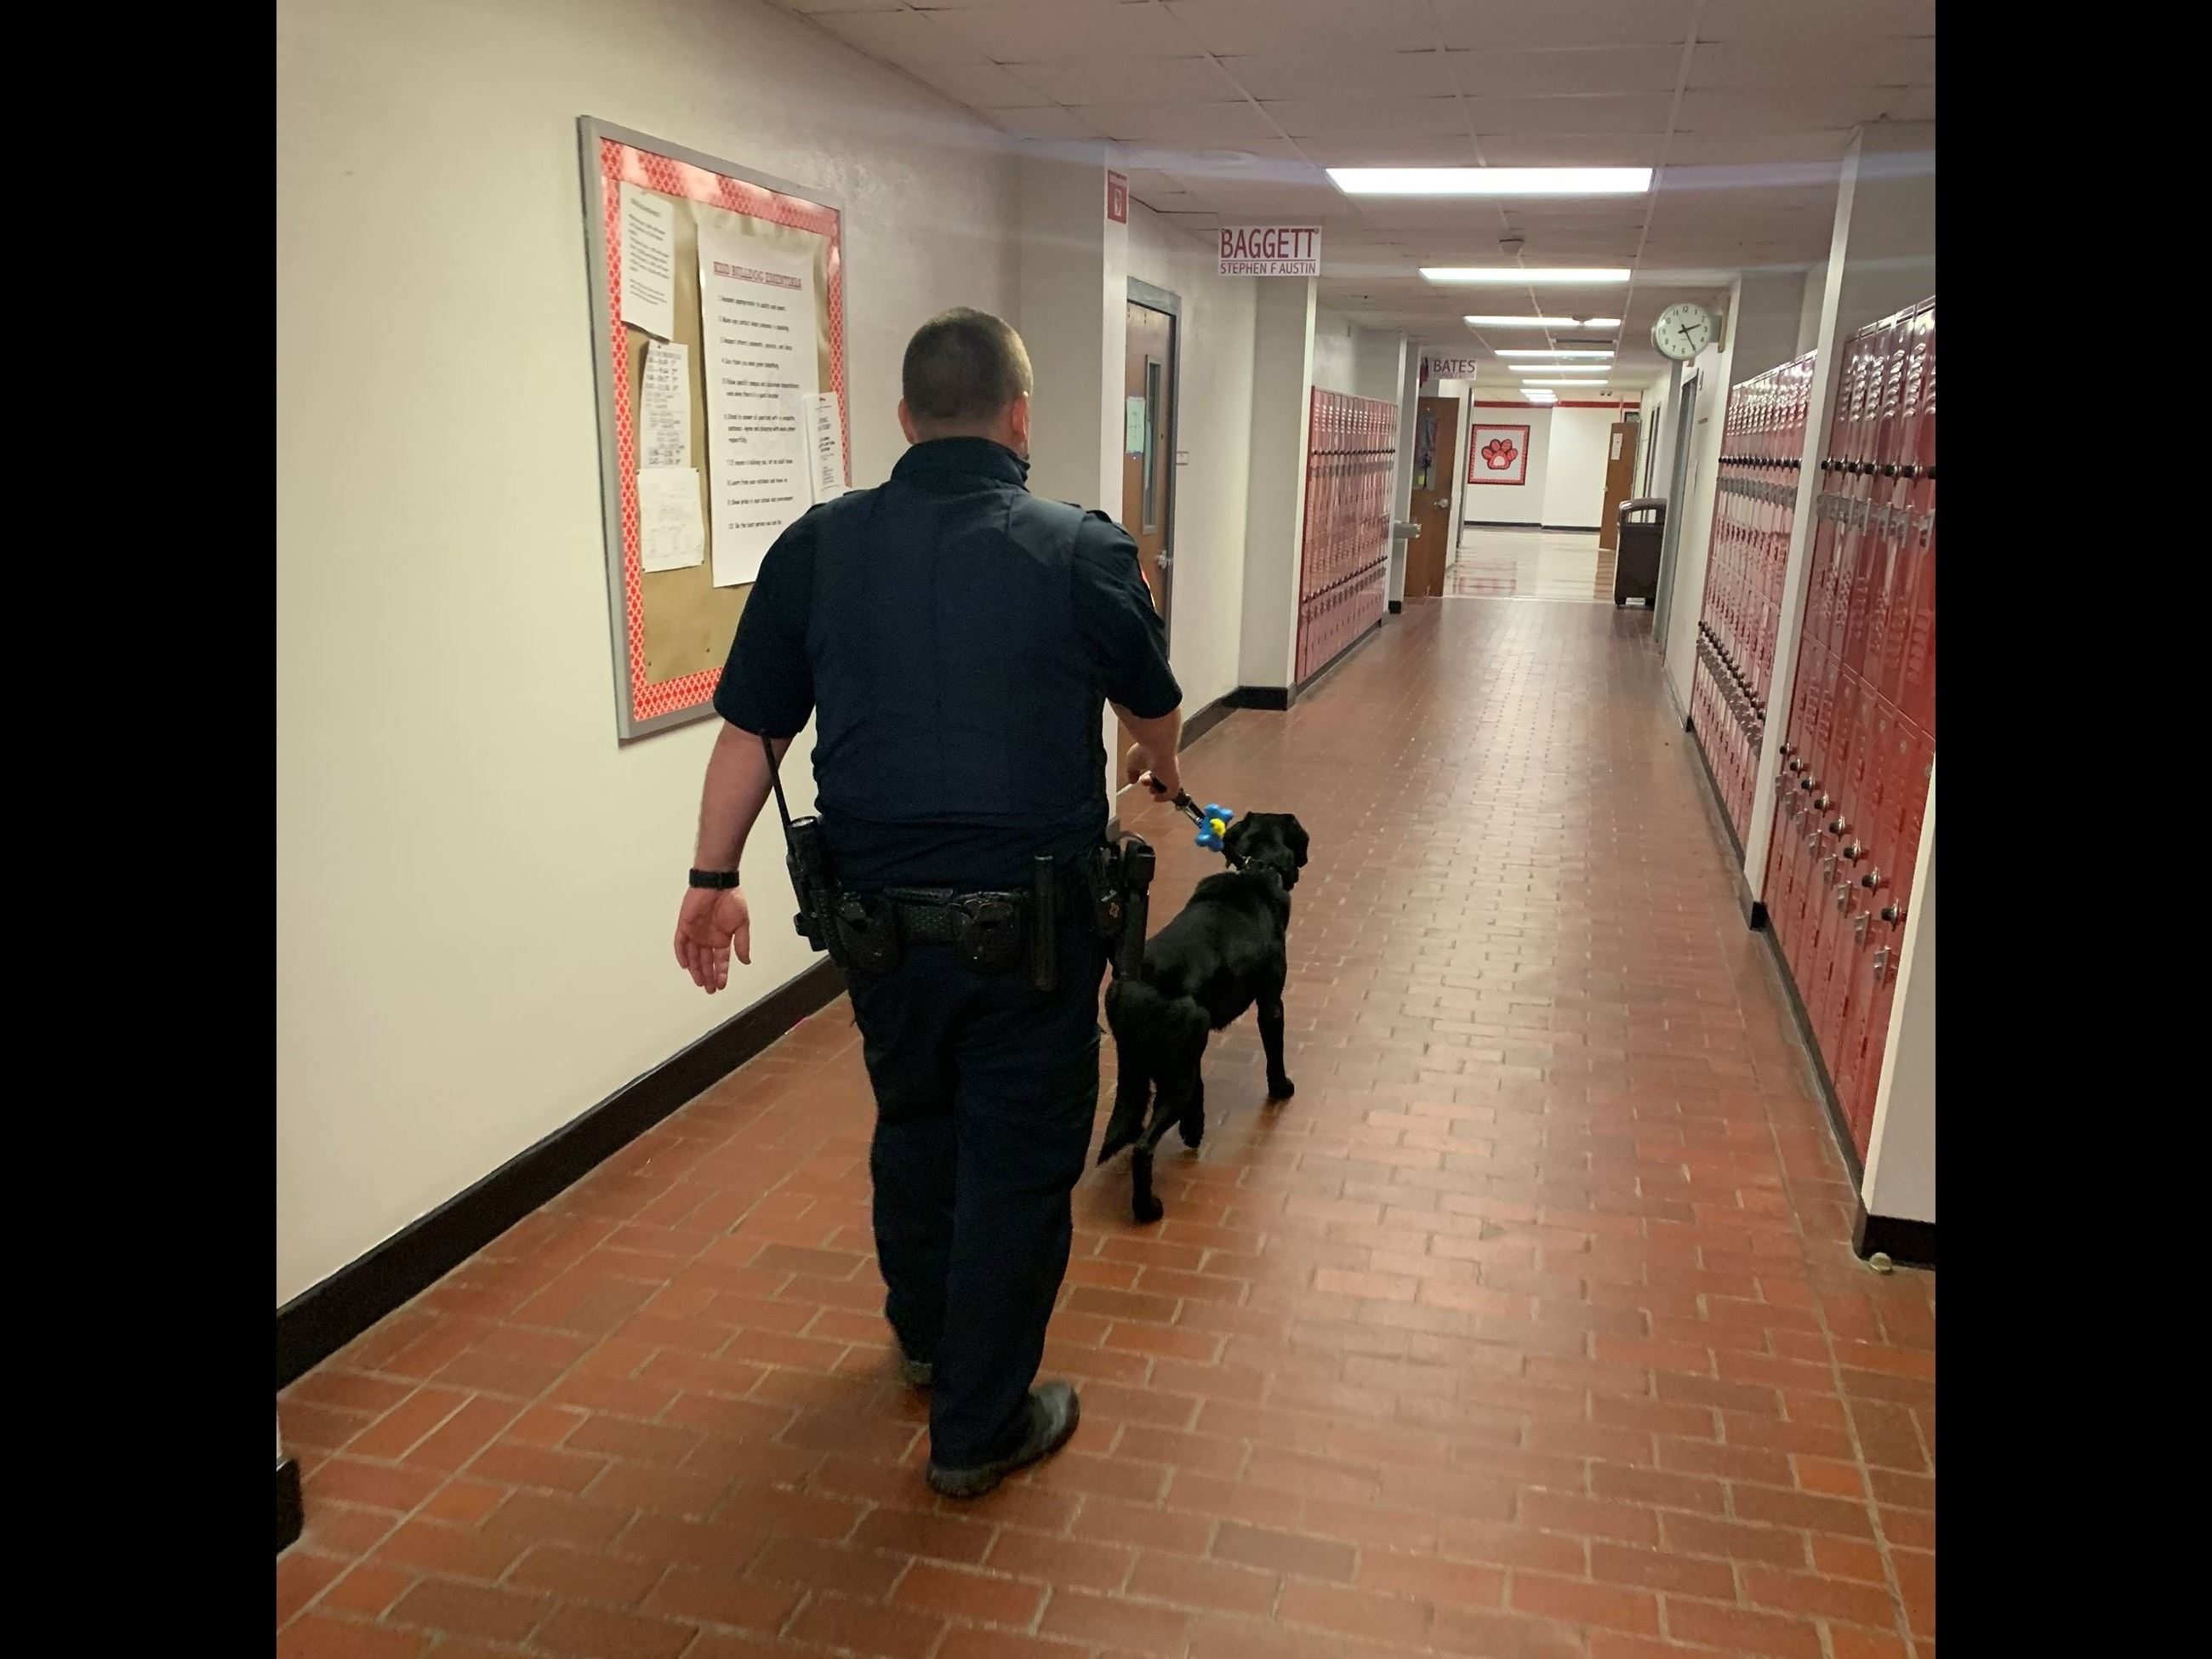 Officer Forbes and K9 Ruger walking down school hallway